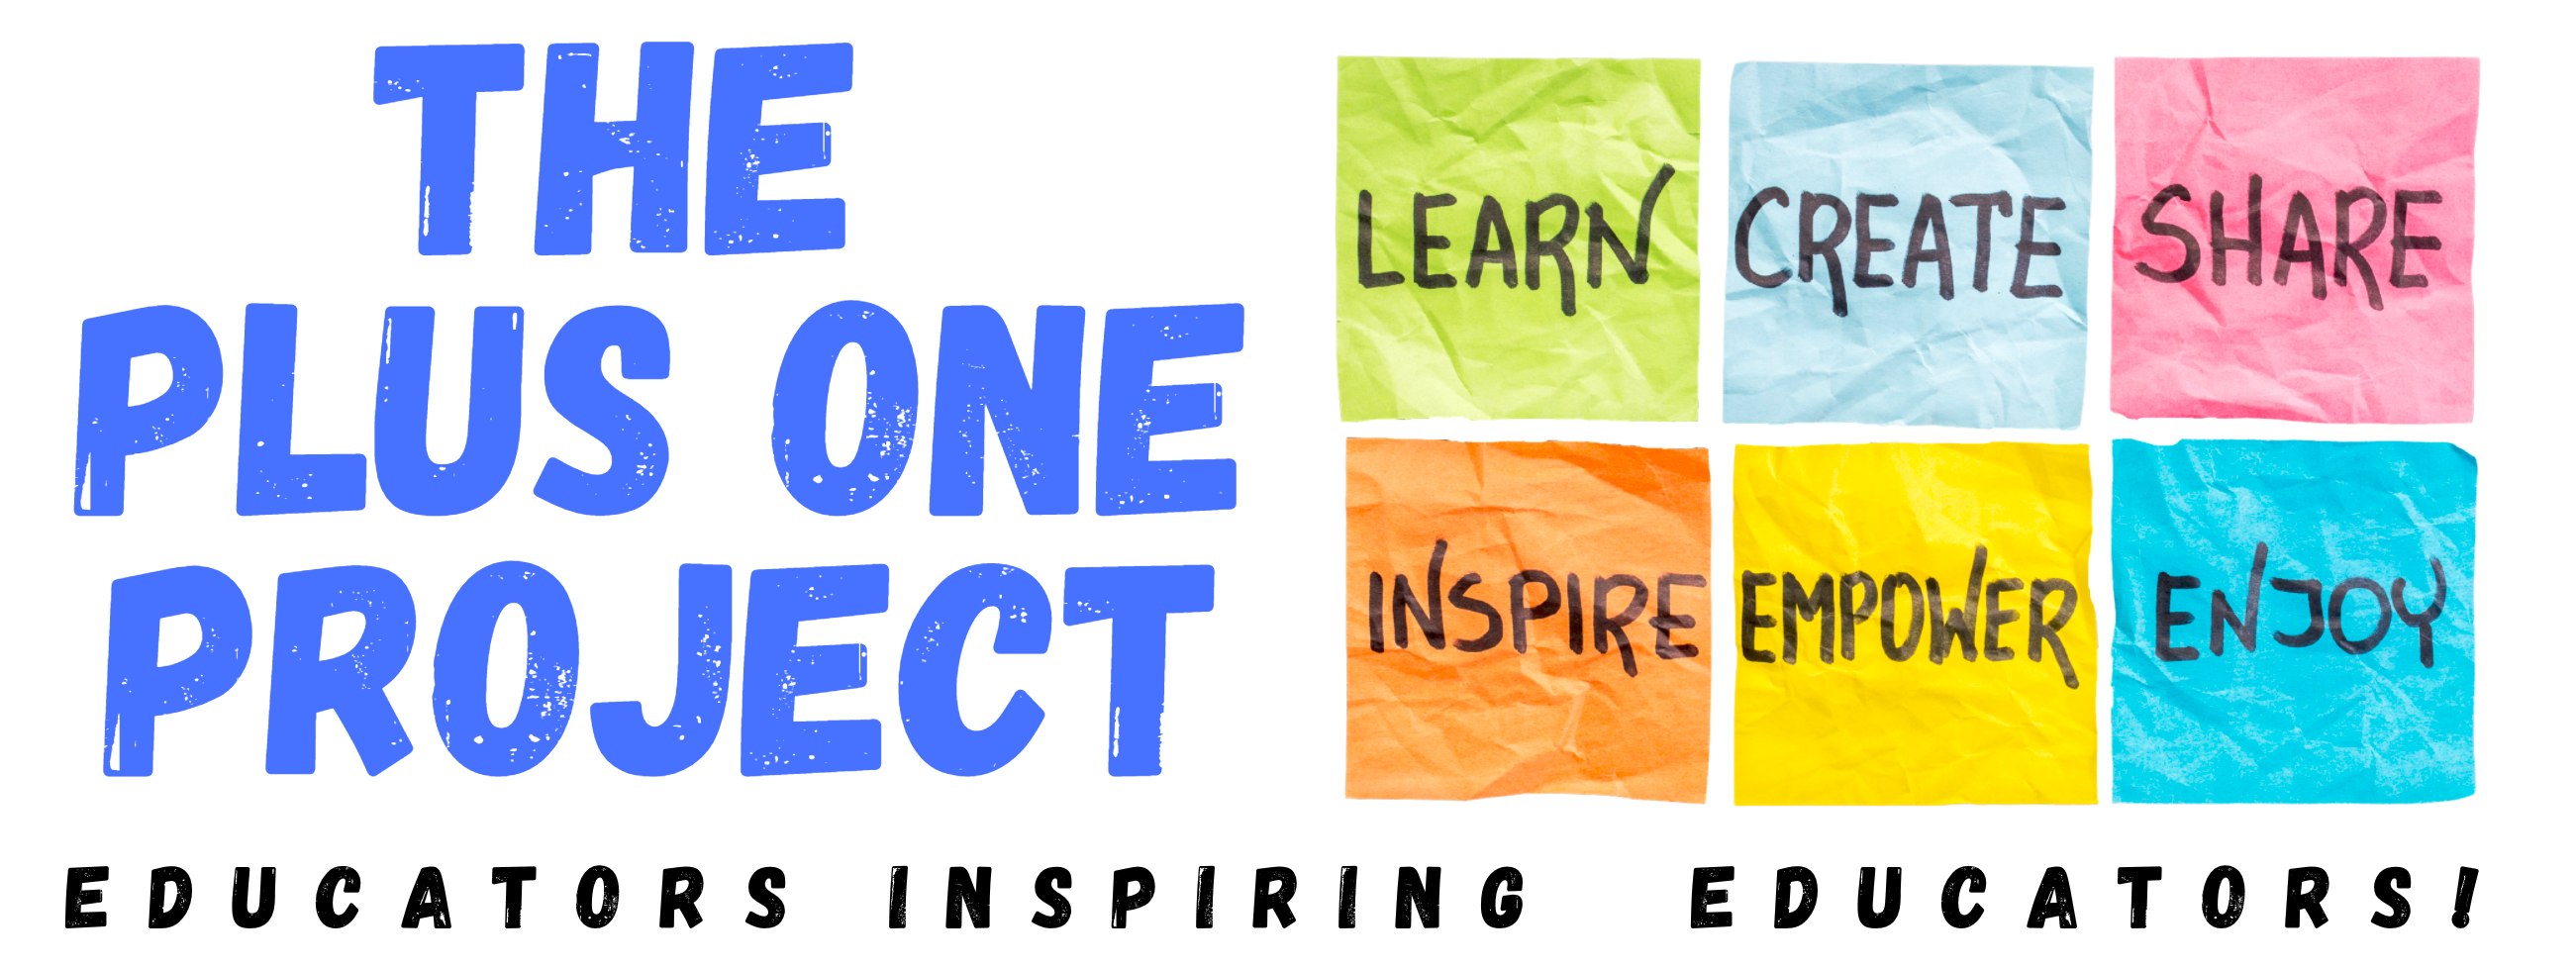 Plus One project banner